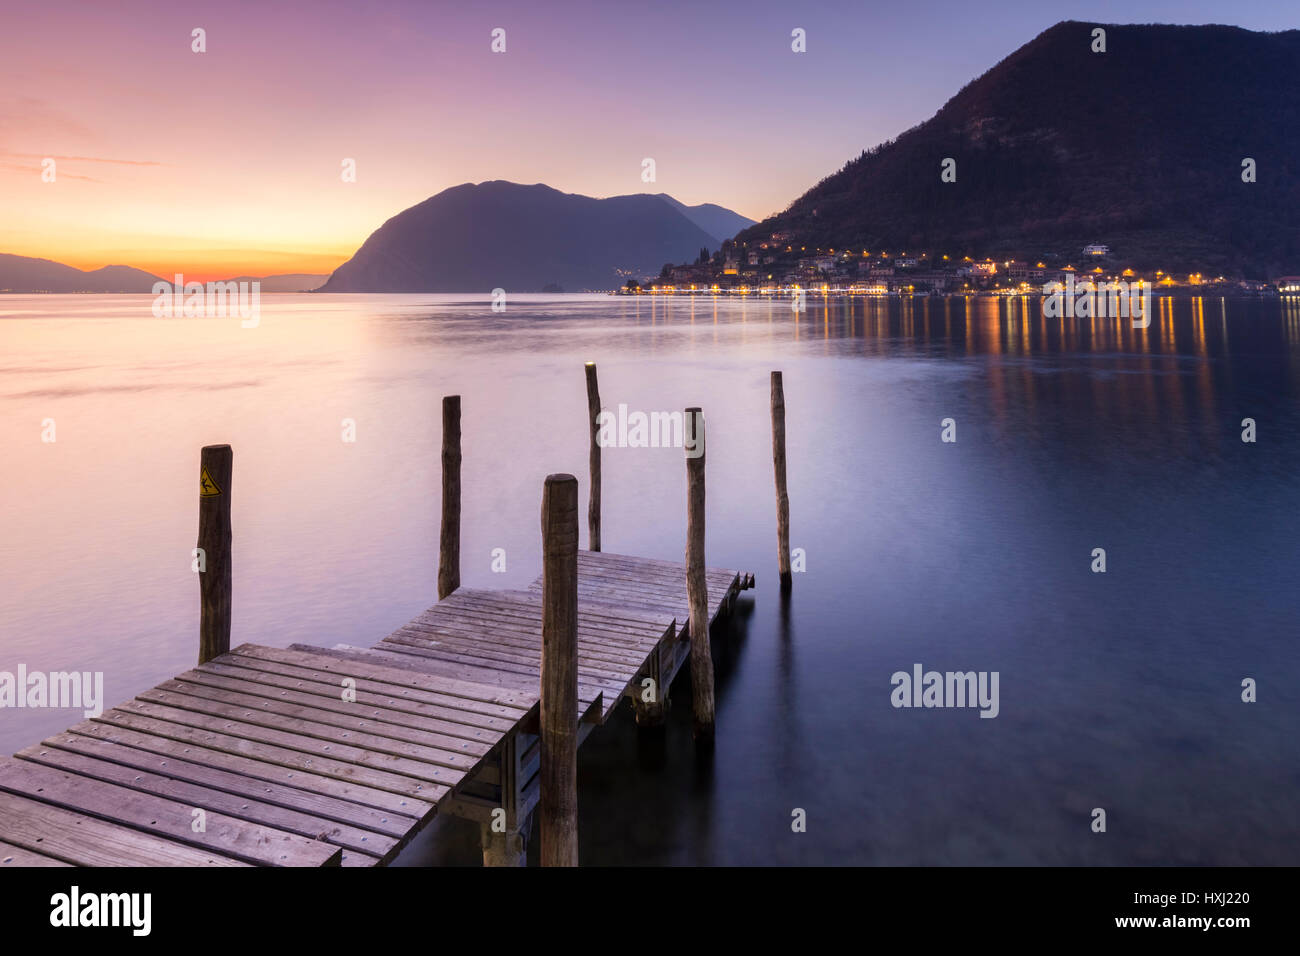 A pier in Sulzano, in front of Montisola and Peschiera Maraglio town during a winter sunset, Brescia Province, Iseo - Stock Image